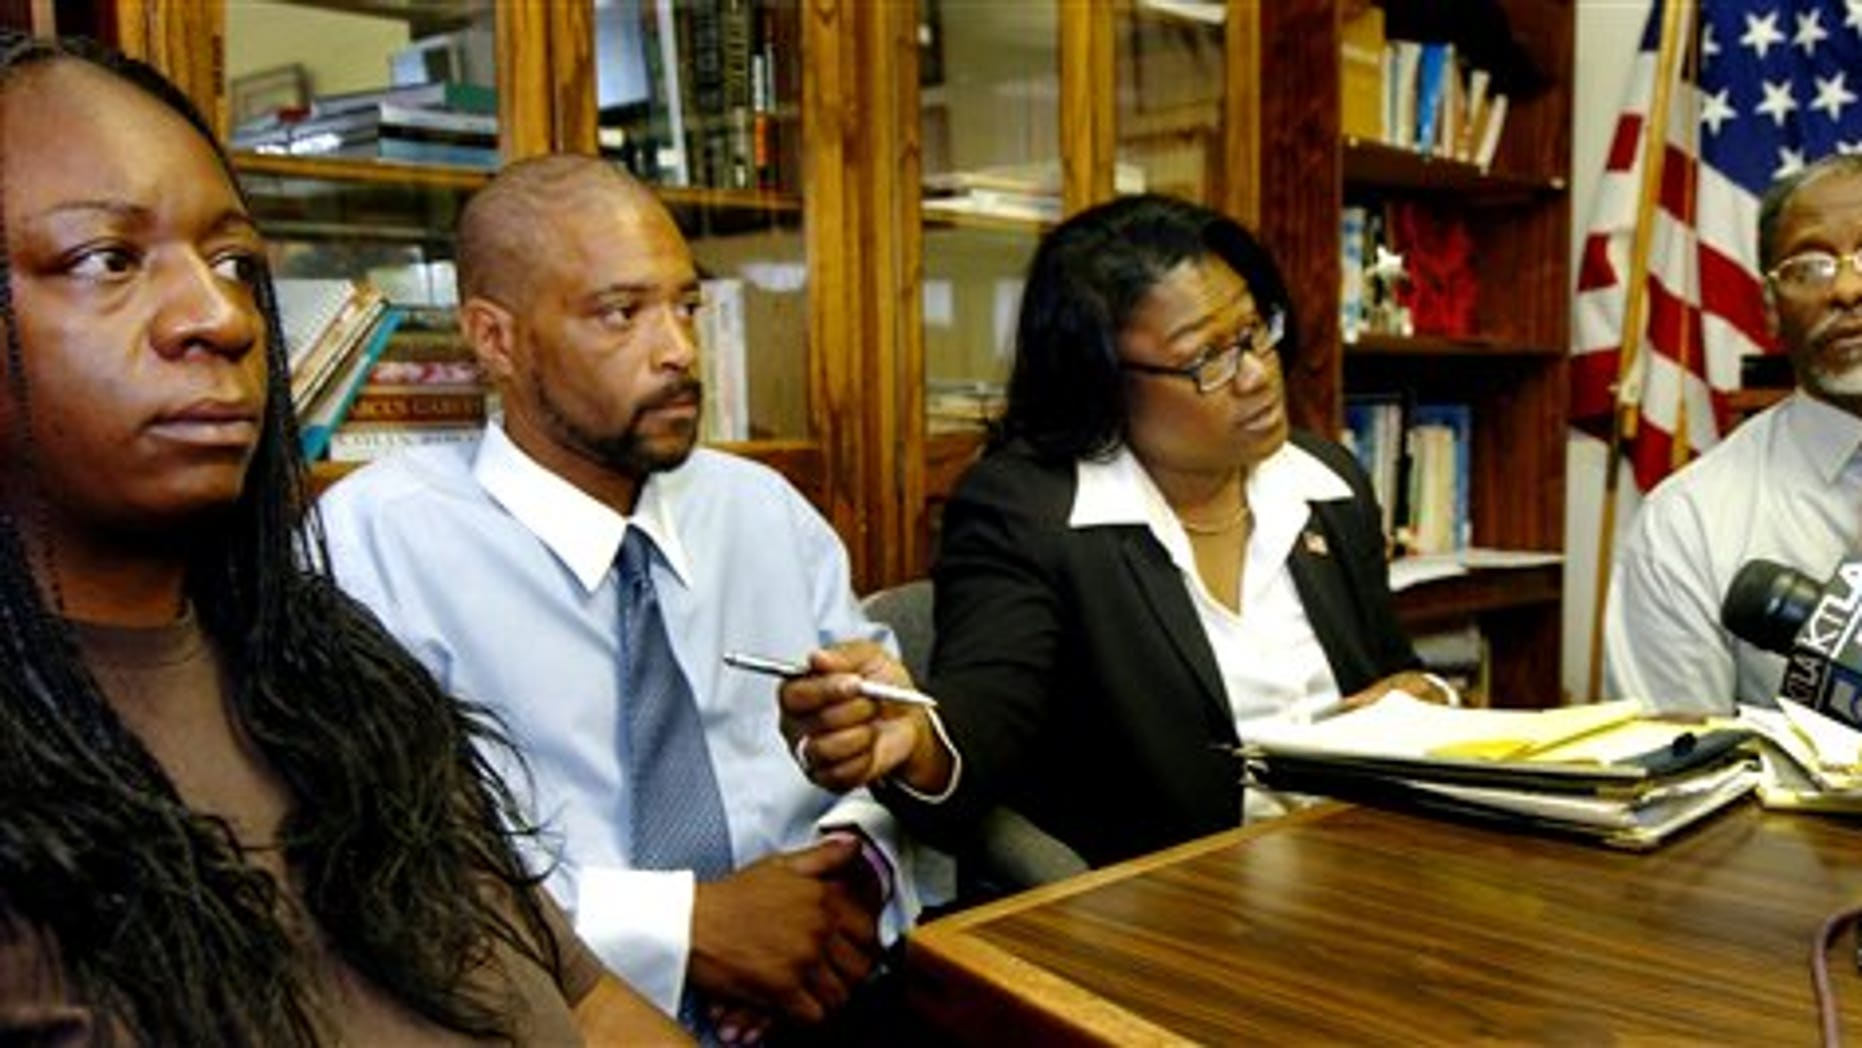 March 28: From left, Anya Slaughter, the mother of Kendrec McDade; Kenneth McDade, his father; Caree Harper, the family's attorney, and Joe Brown, president of the NAACP's Pasadena branch, answer questions about Kendrec McDade's shooting at the Pasadena Branch of NAACP in Pasadena, Calif.